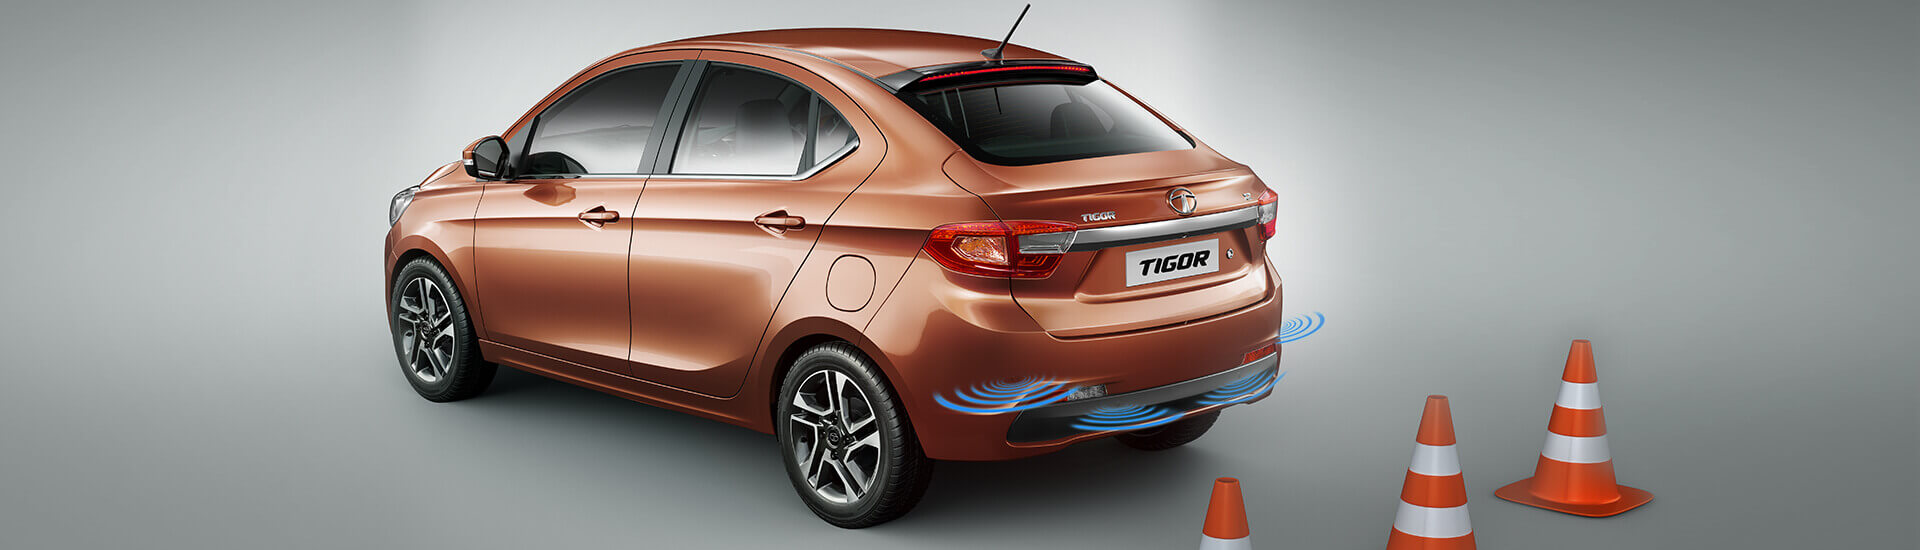 Tata Tigor Price In India Specifications Review Colors